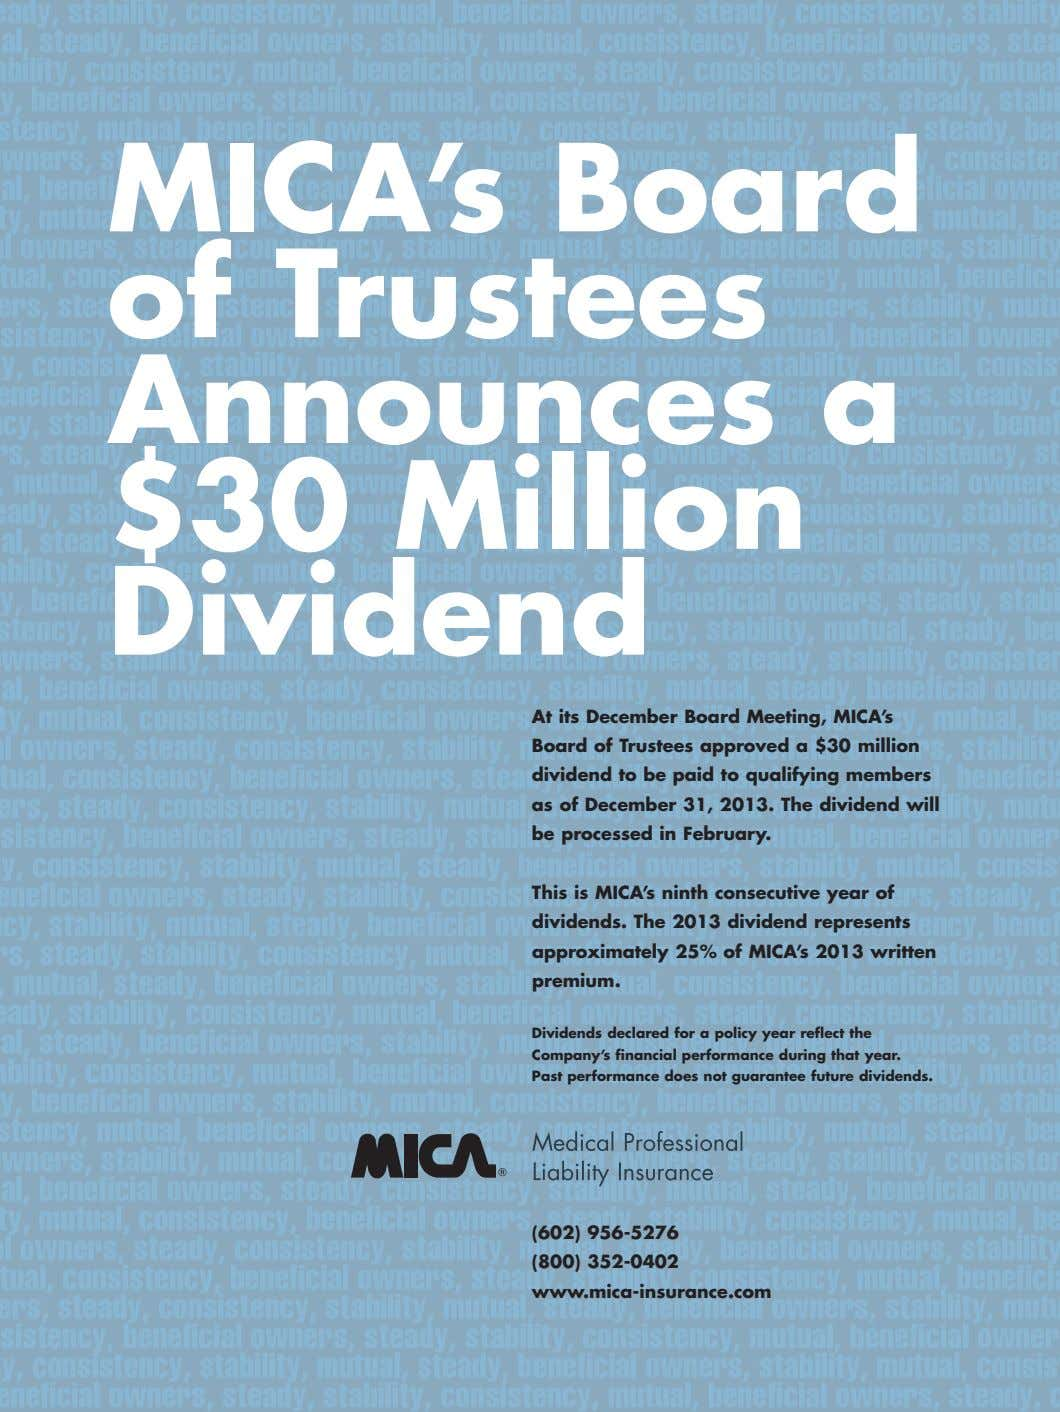 MICA's Board of Trustees Announces a $30 Million Dividend At its December Board Meeting, MICA's